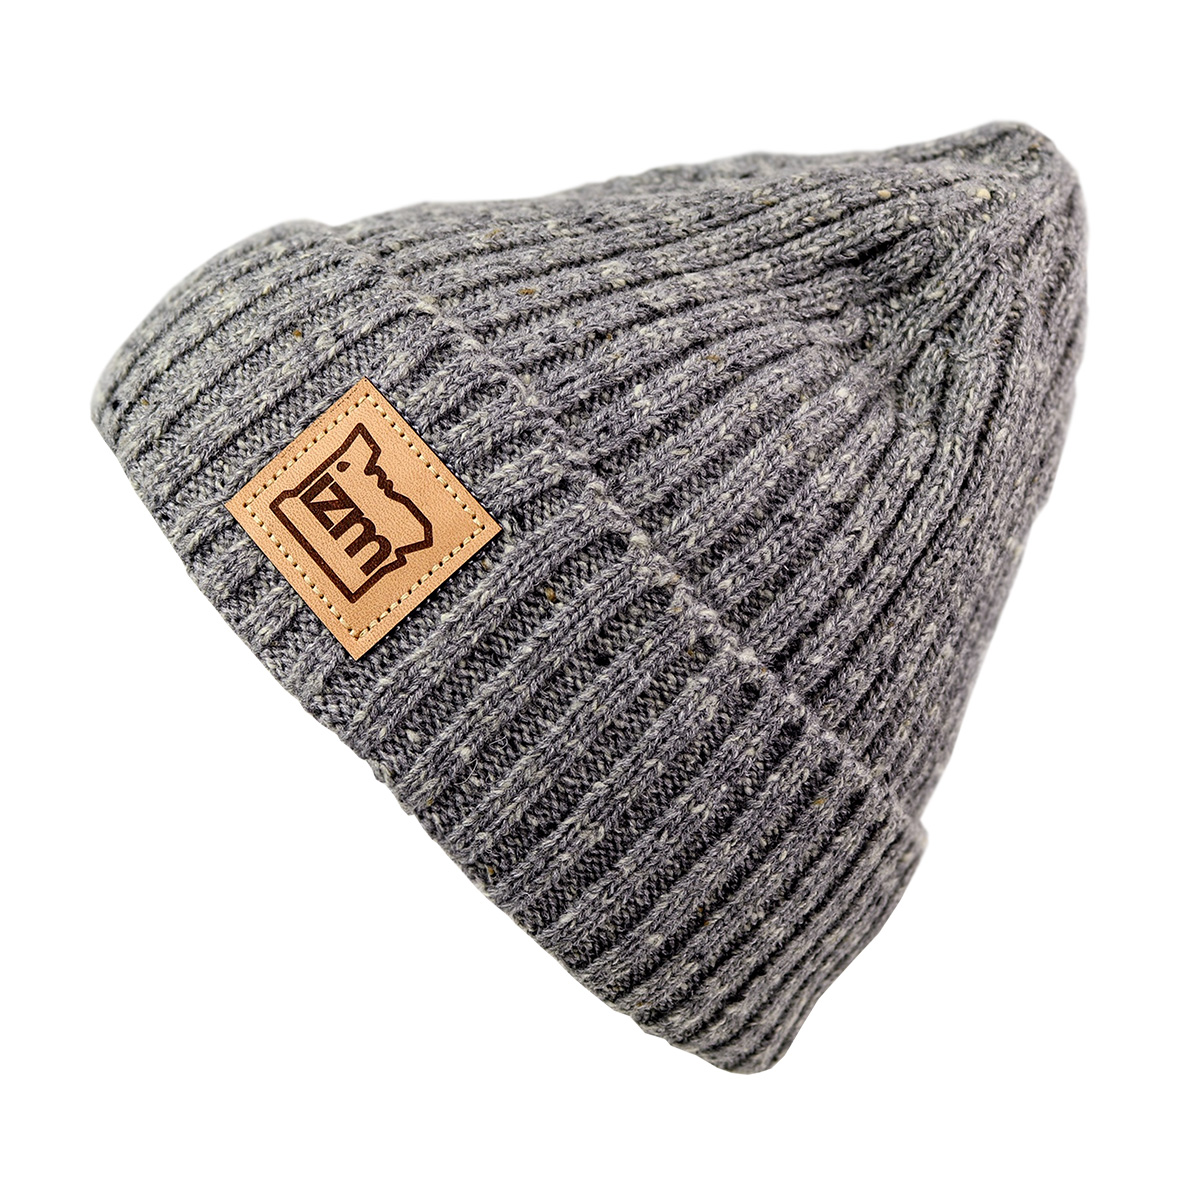 izm-productphoto-beanie-youth-merino-gray-primary